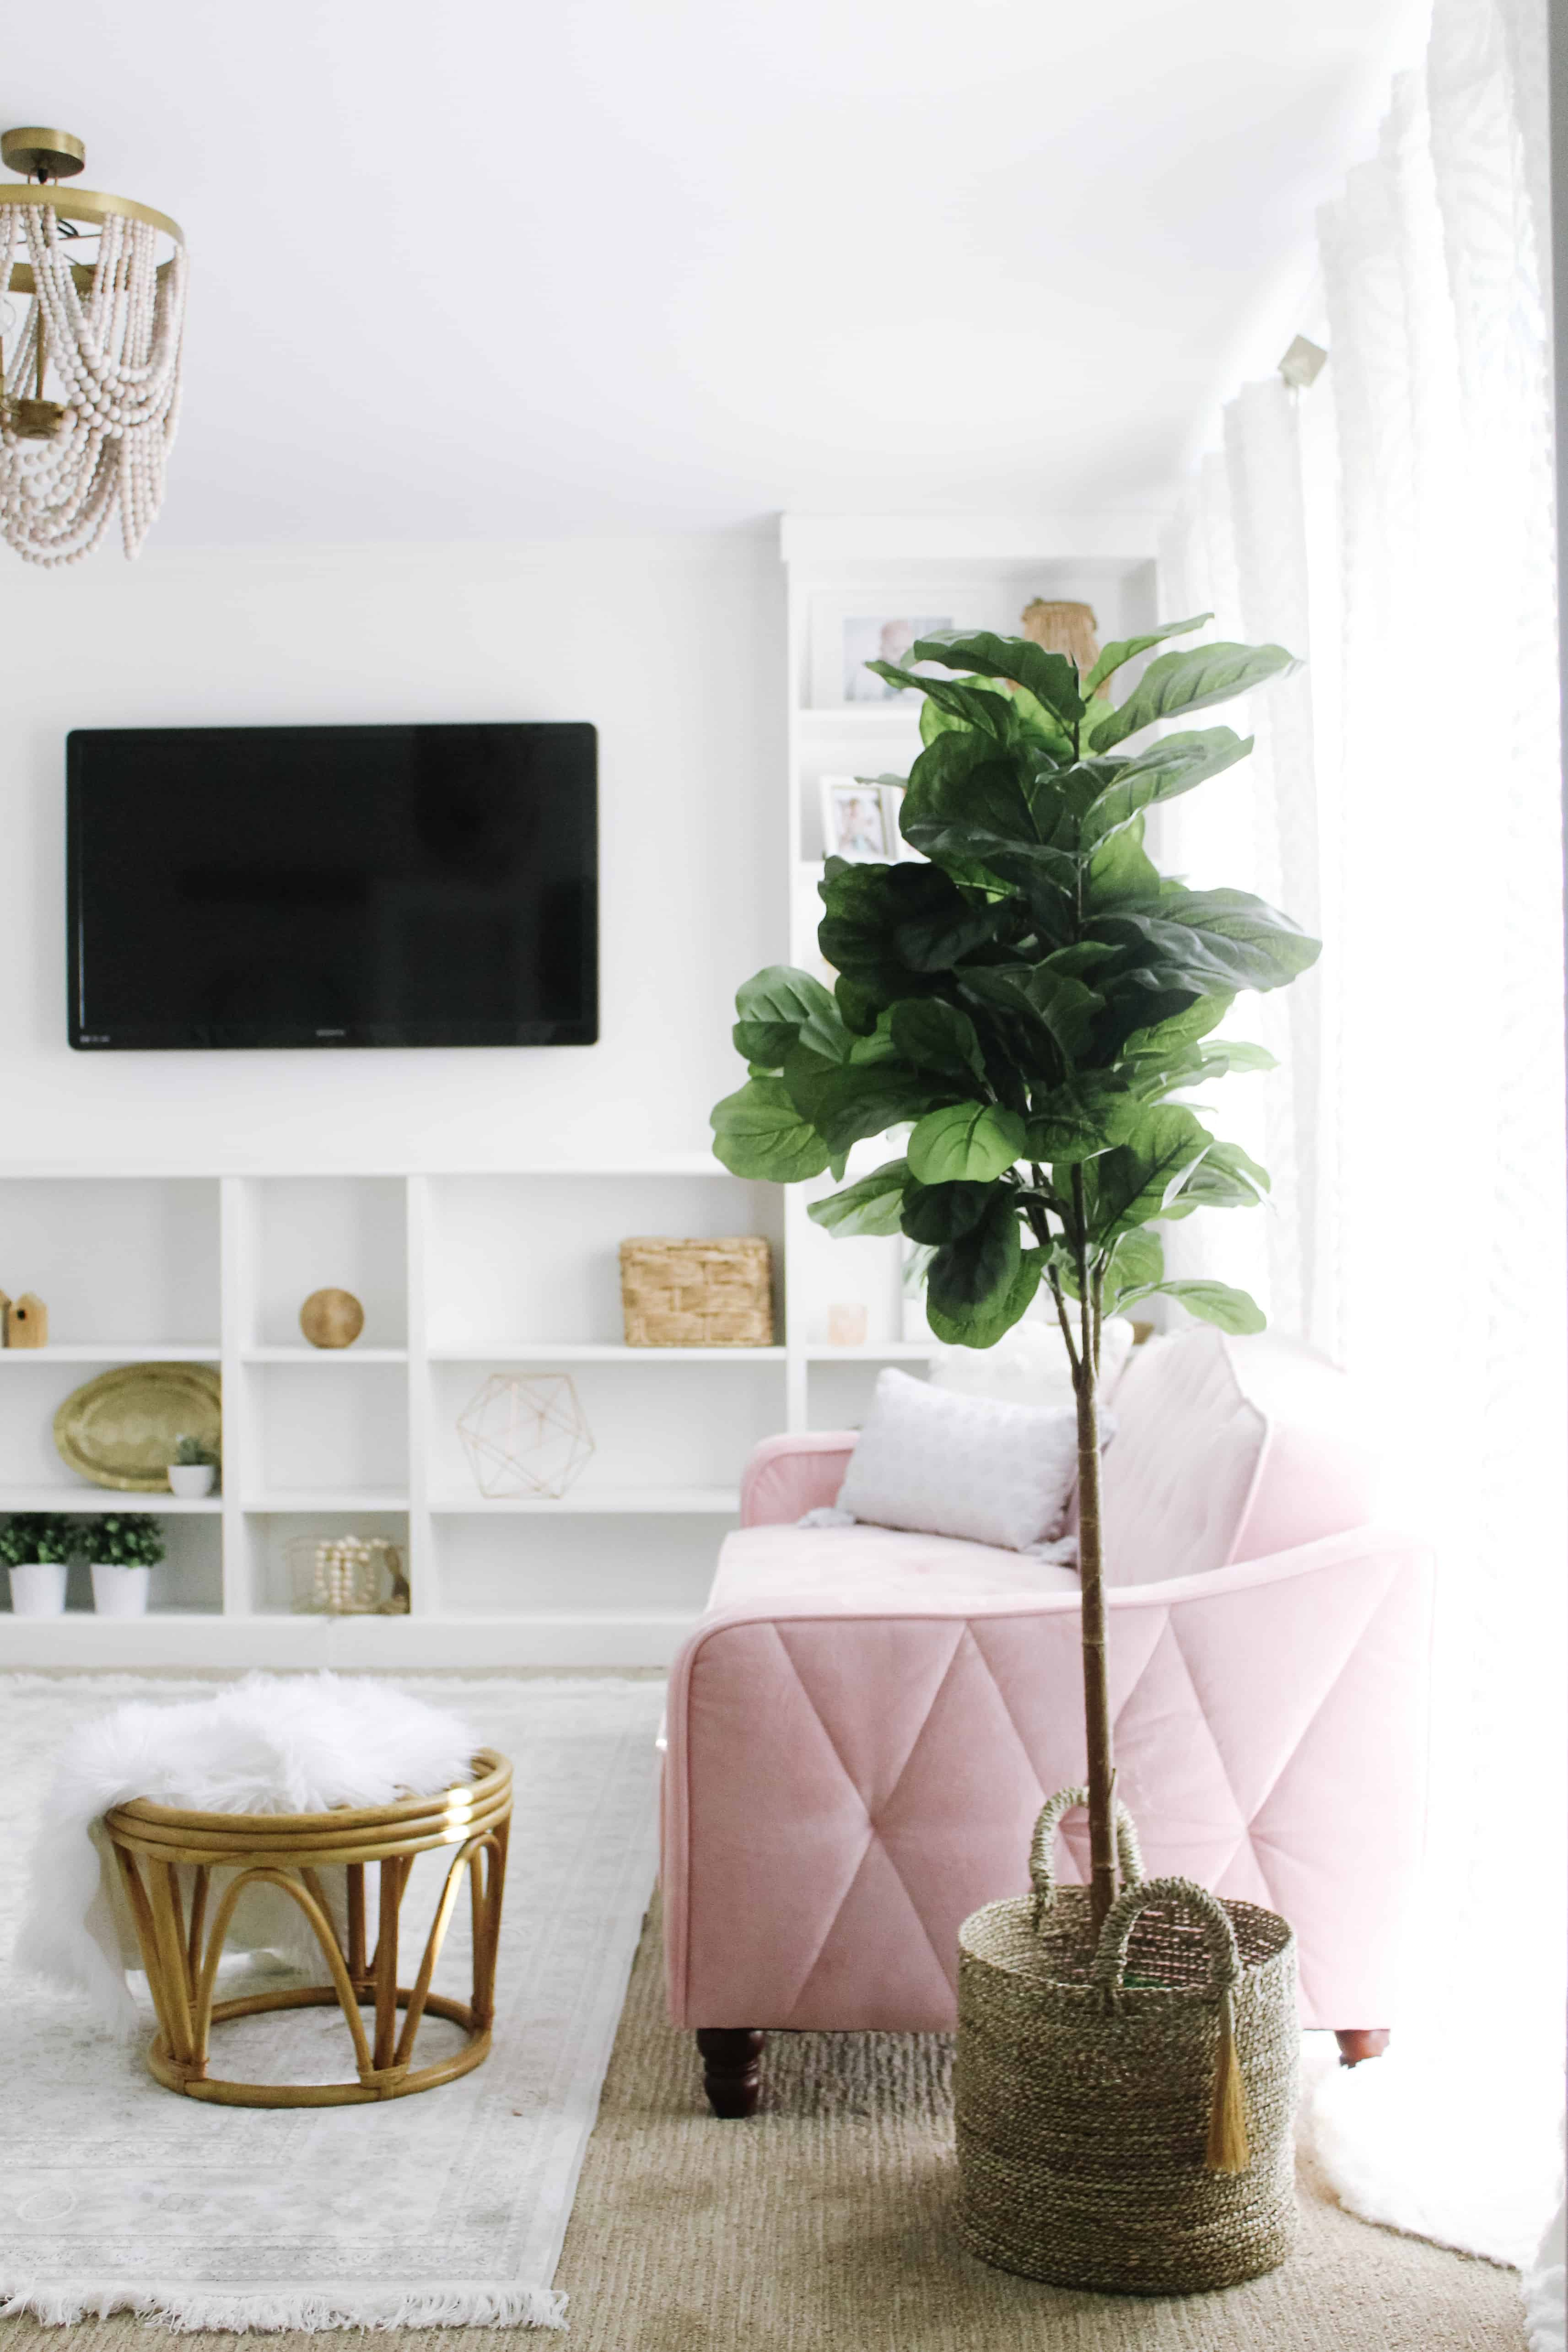 pink couch and fiddle leaf fig tree